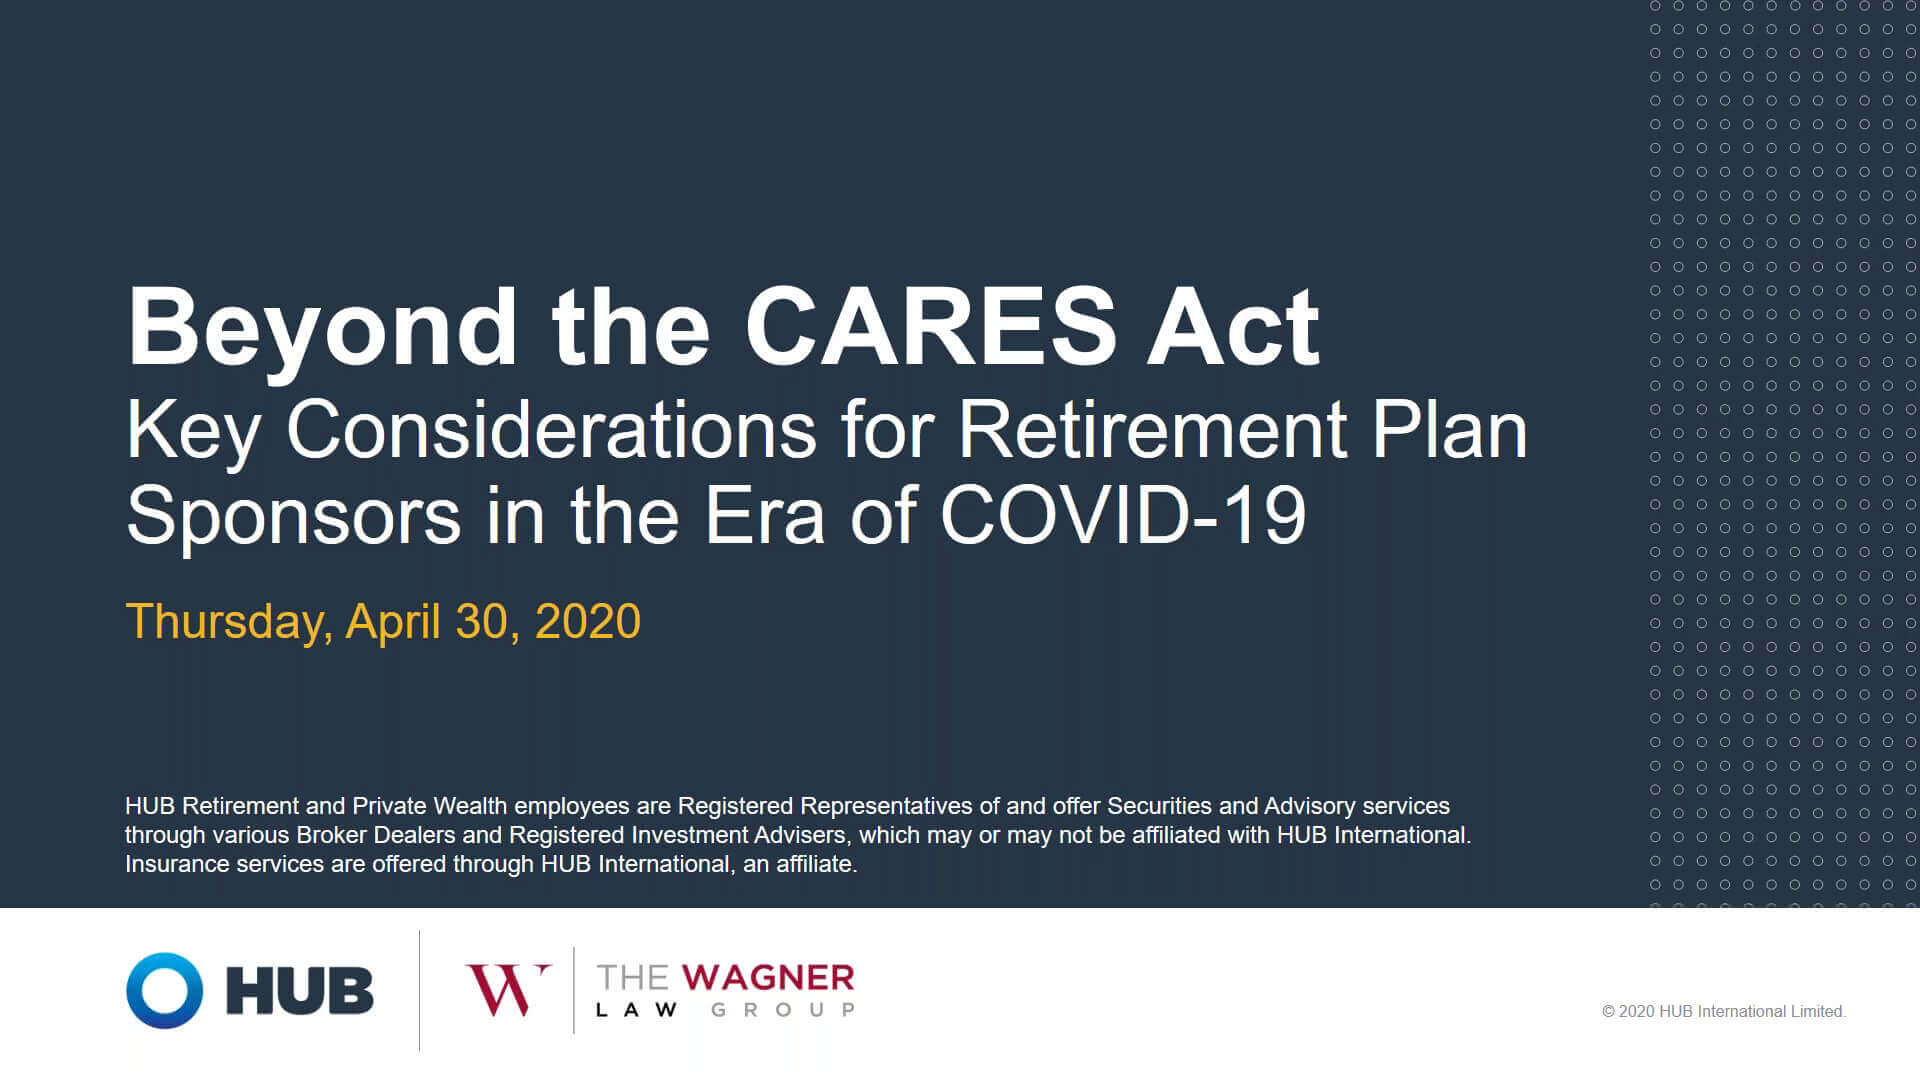 Beyond The CARES Act Webinar